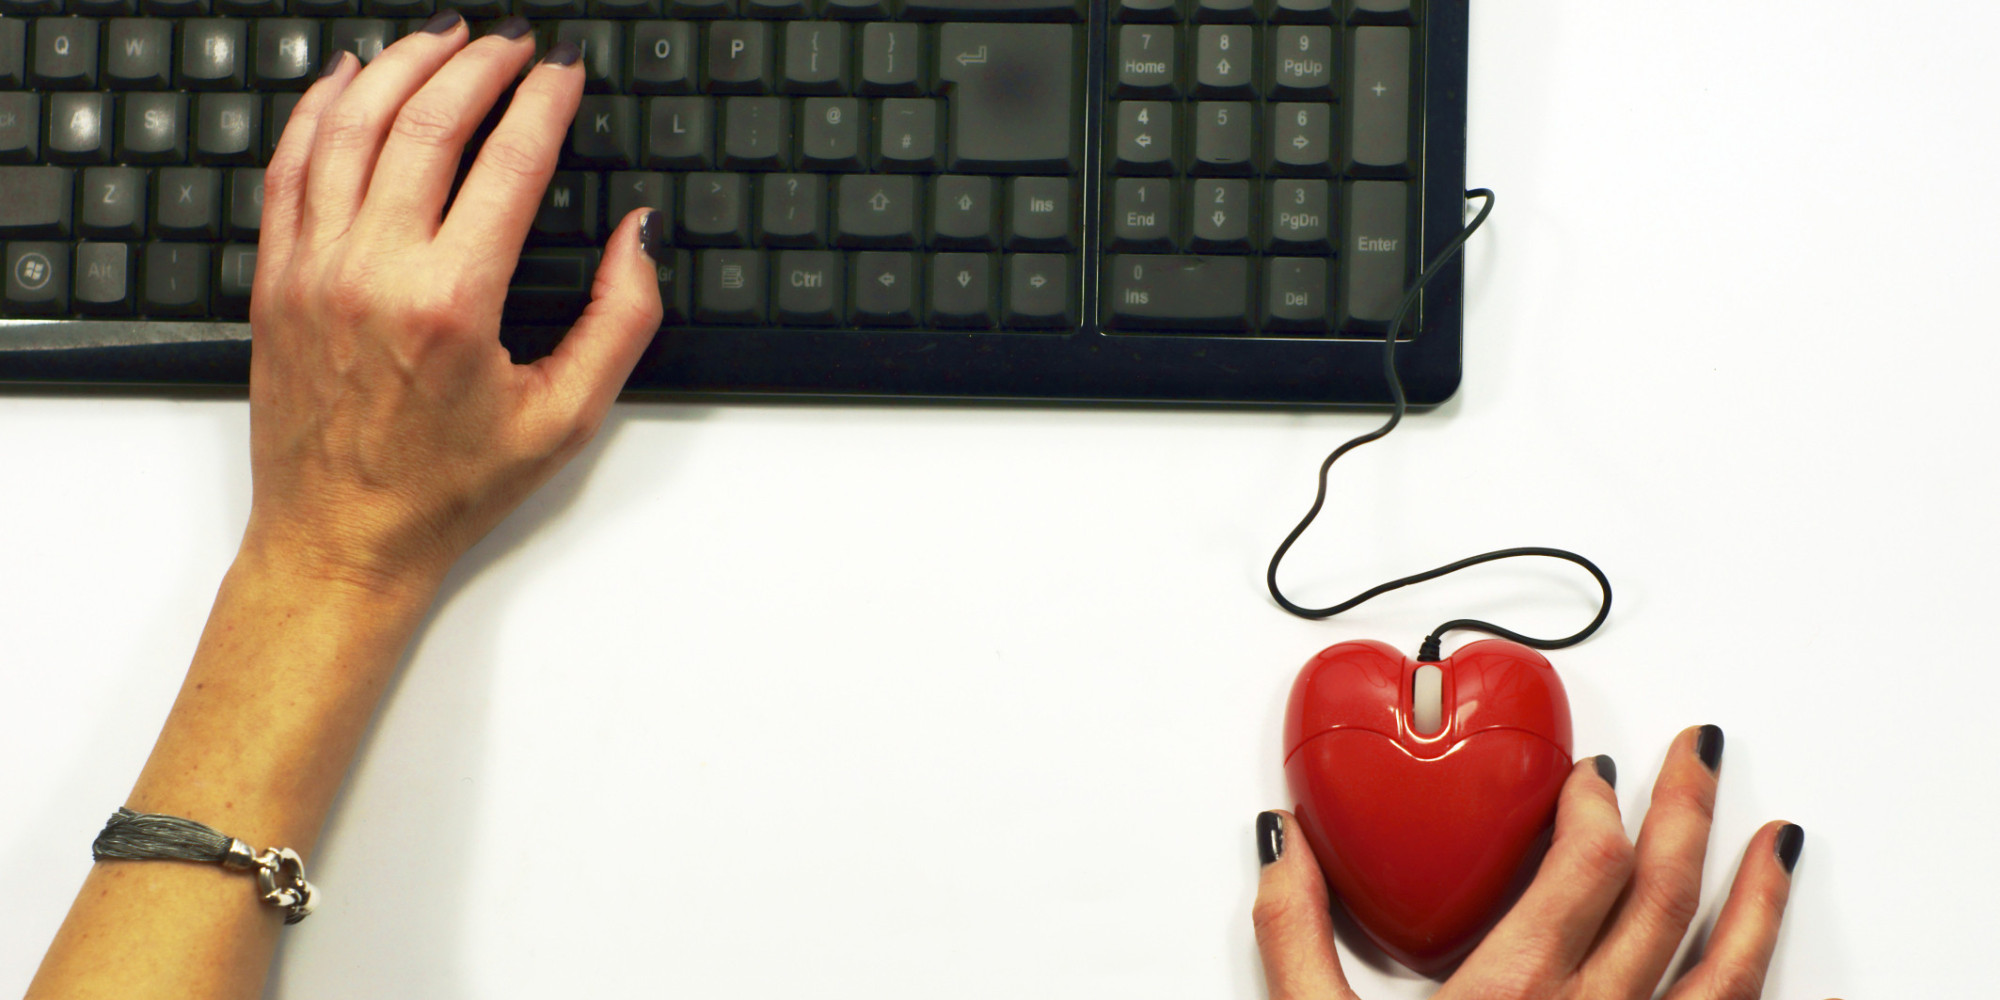 gorgeous online dating online dating has lost ist stigma over the last ...